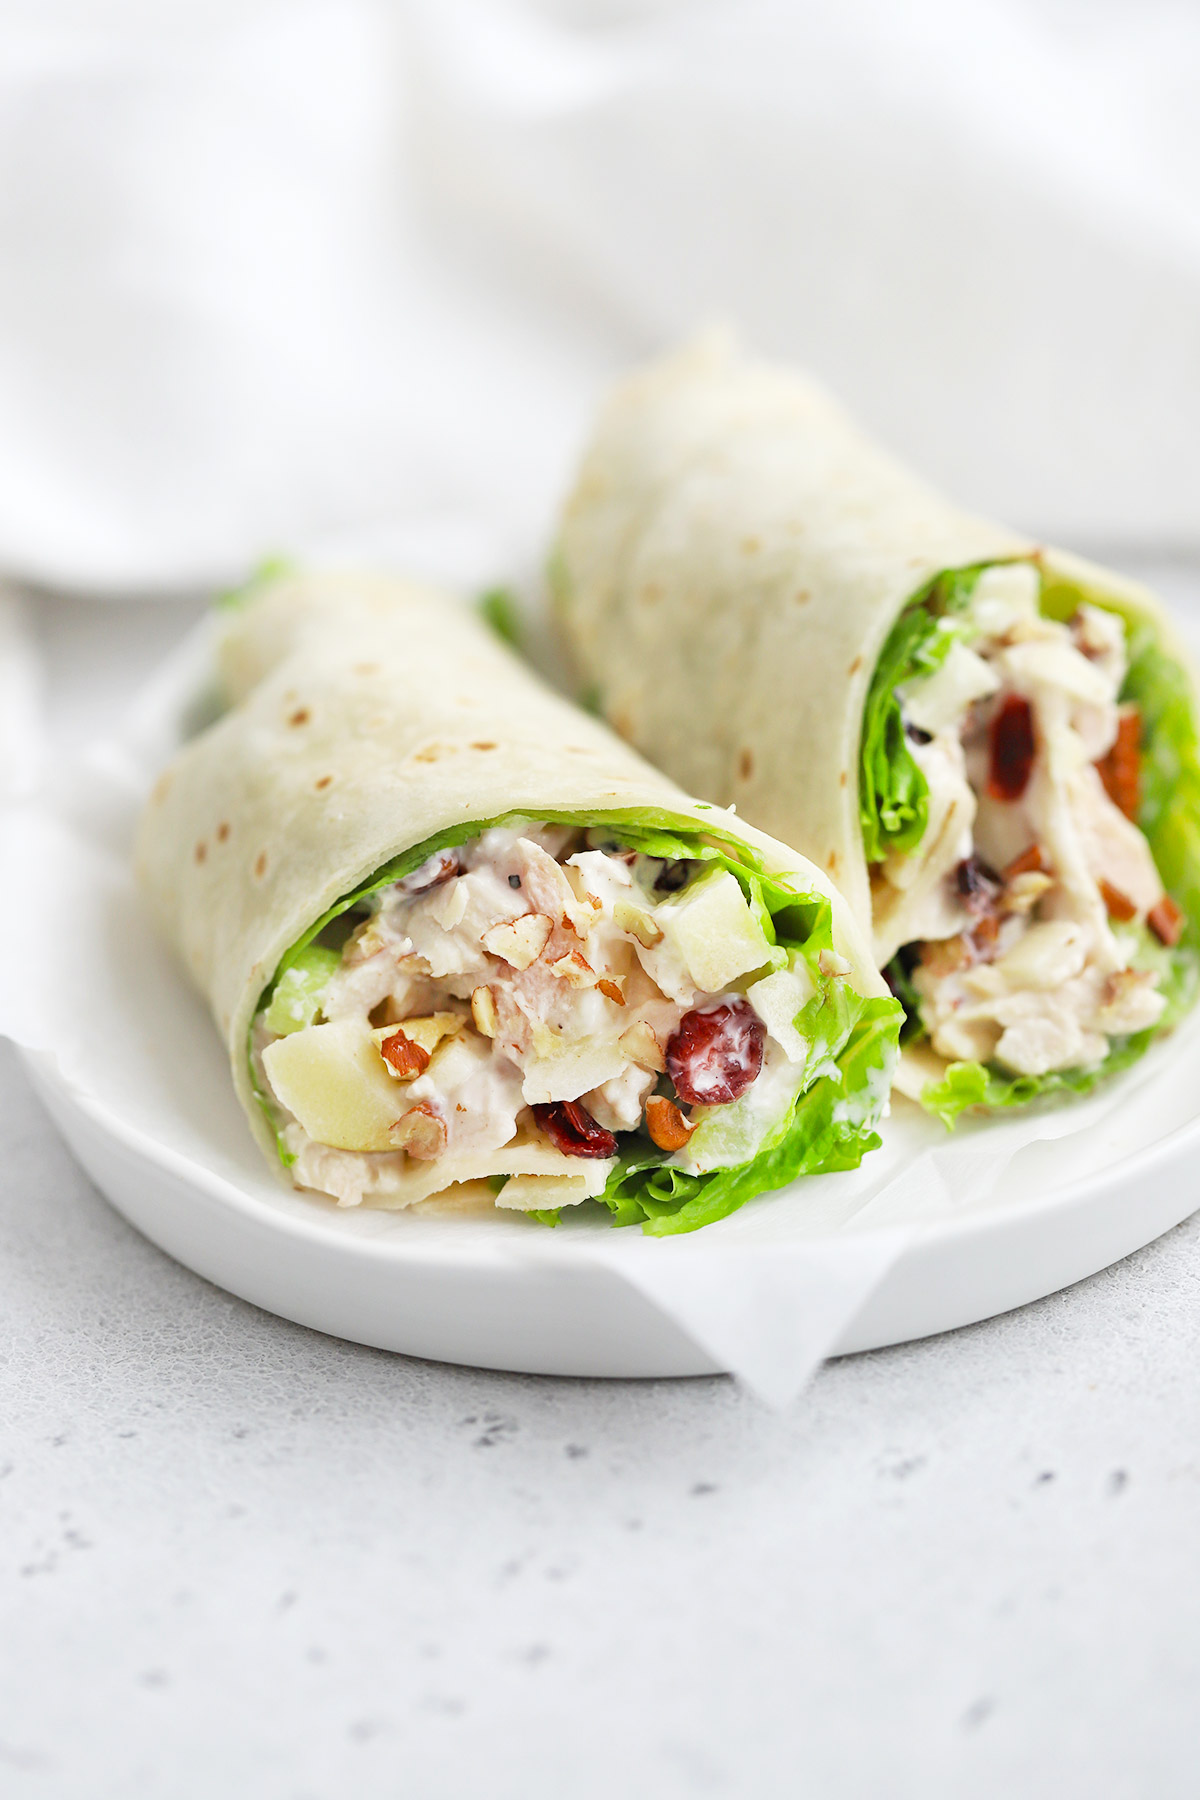 Close-up view of an Apple Cranberry Chicken Salad Wrap made with a gluten-free tortilla and lettuce.